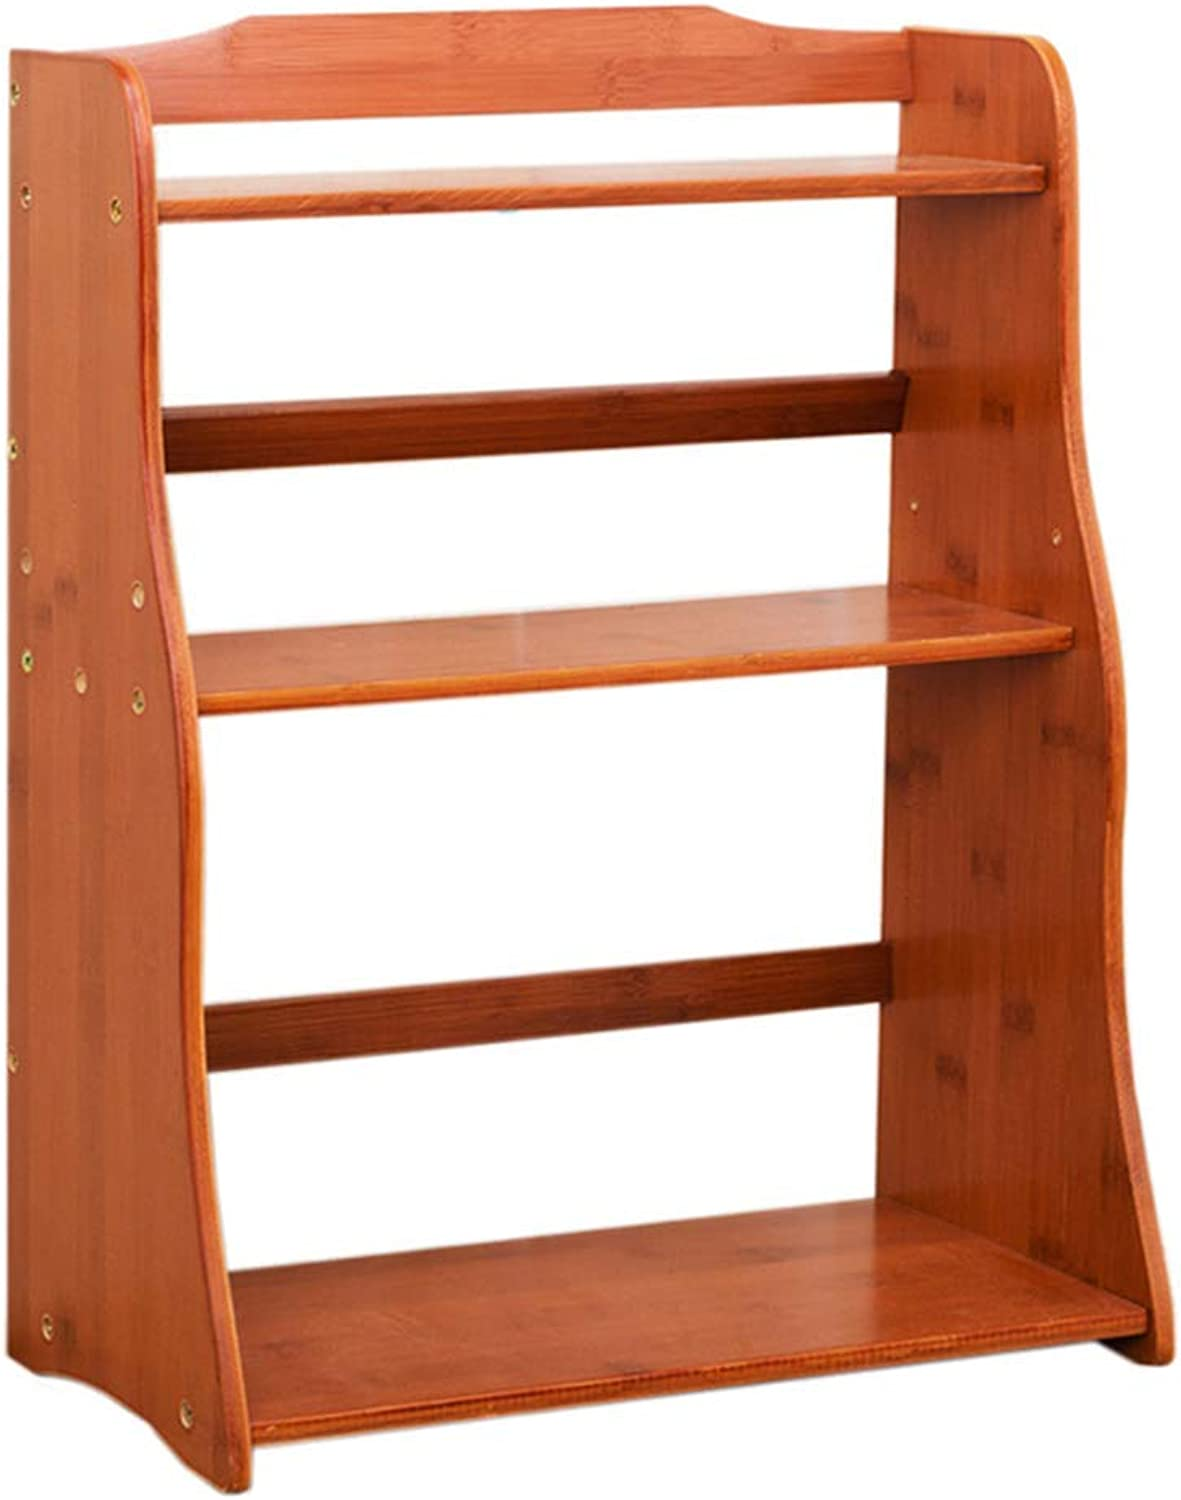 DYR 2 3 Bamboo Shelving Storage Bathroom, Shelves, Shelves, Ideal for Hallway, Bathroom, Kitchen, Living Room (Dimensions  3 Levels)